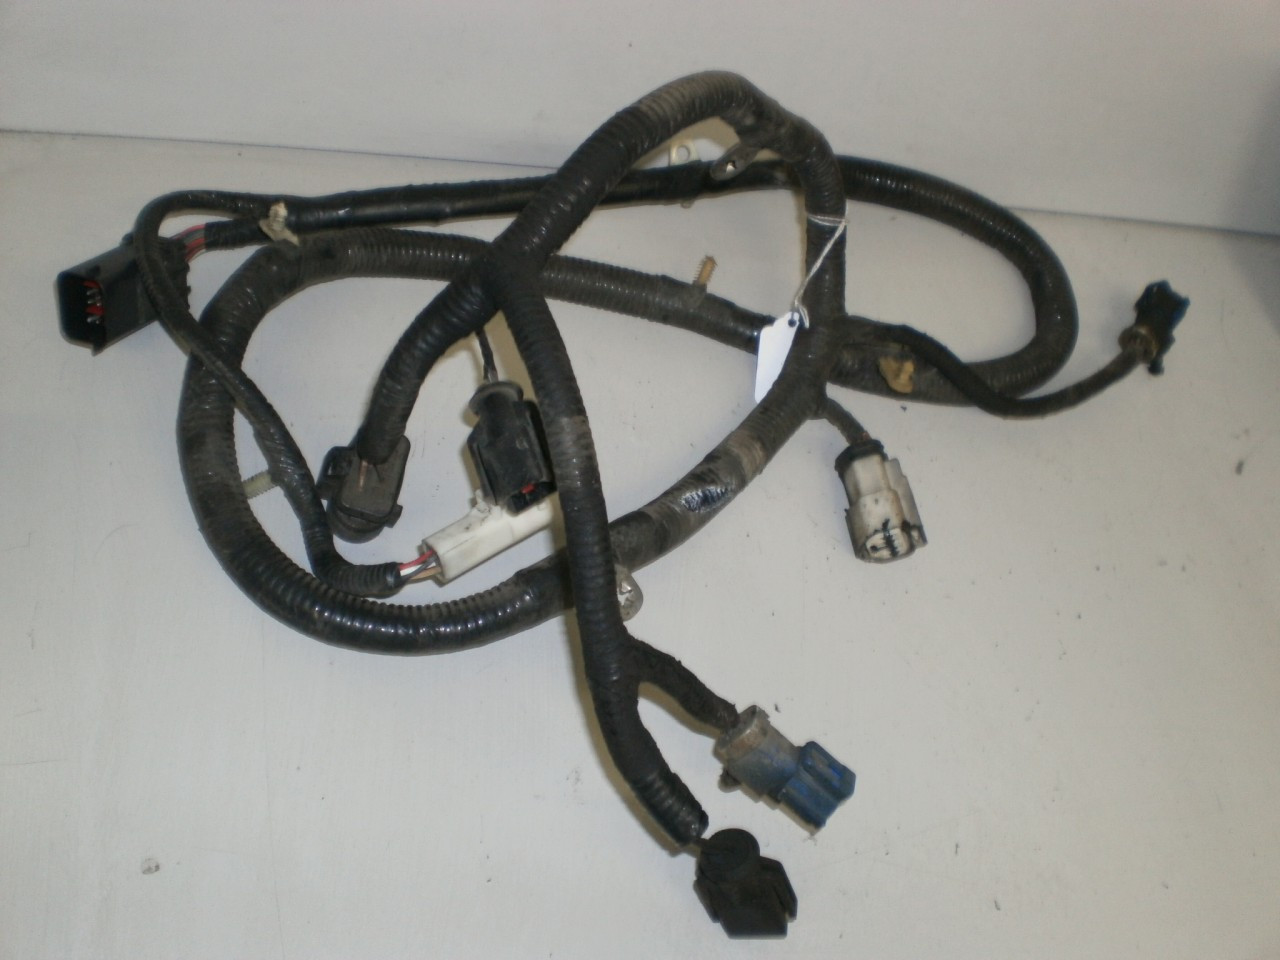 1996 1998 ford mustang 3 8 automatic transmission wire harness lx 7c078 1970 Mustang Wire Harness